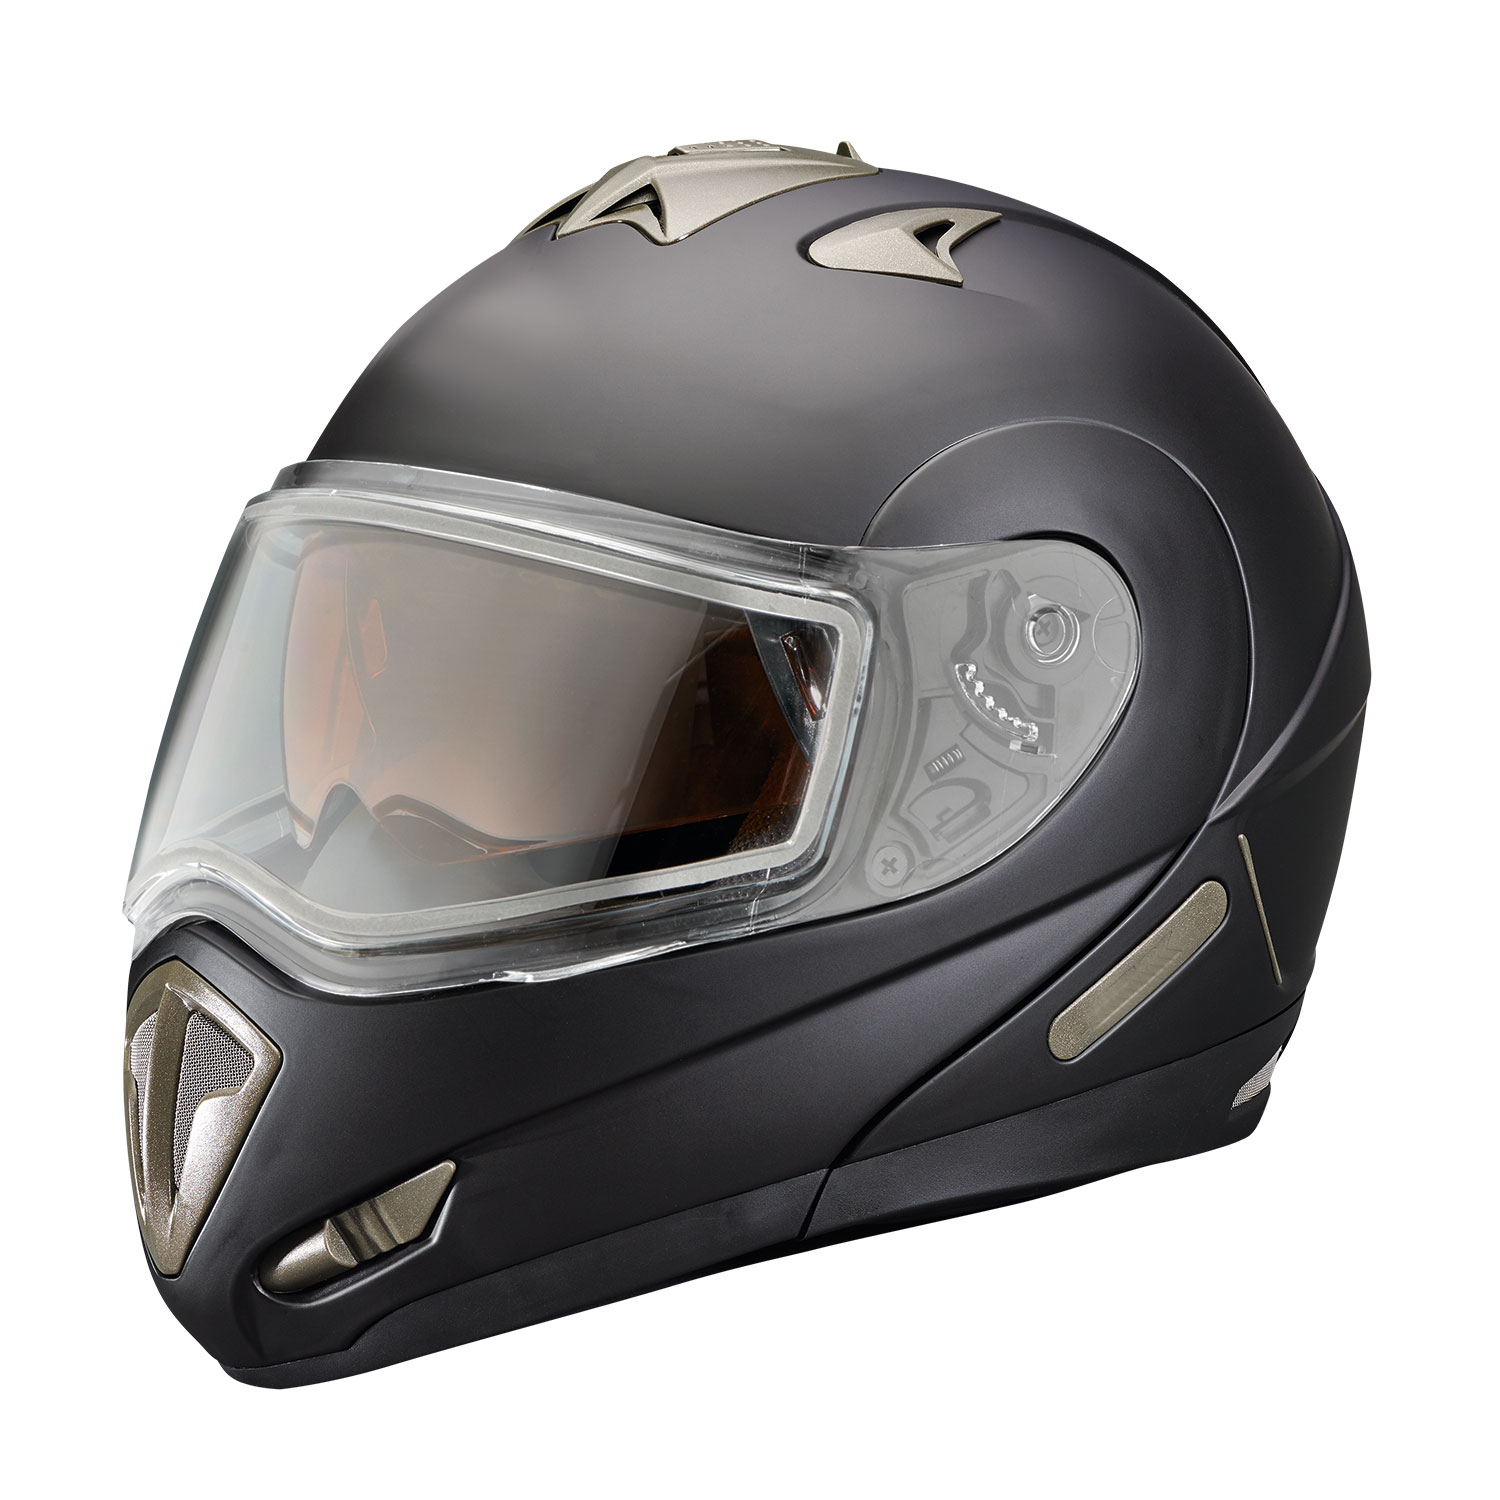 Modular 1.0 Adult Helmet with Dual-Pane Shield, Black Matte